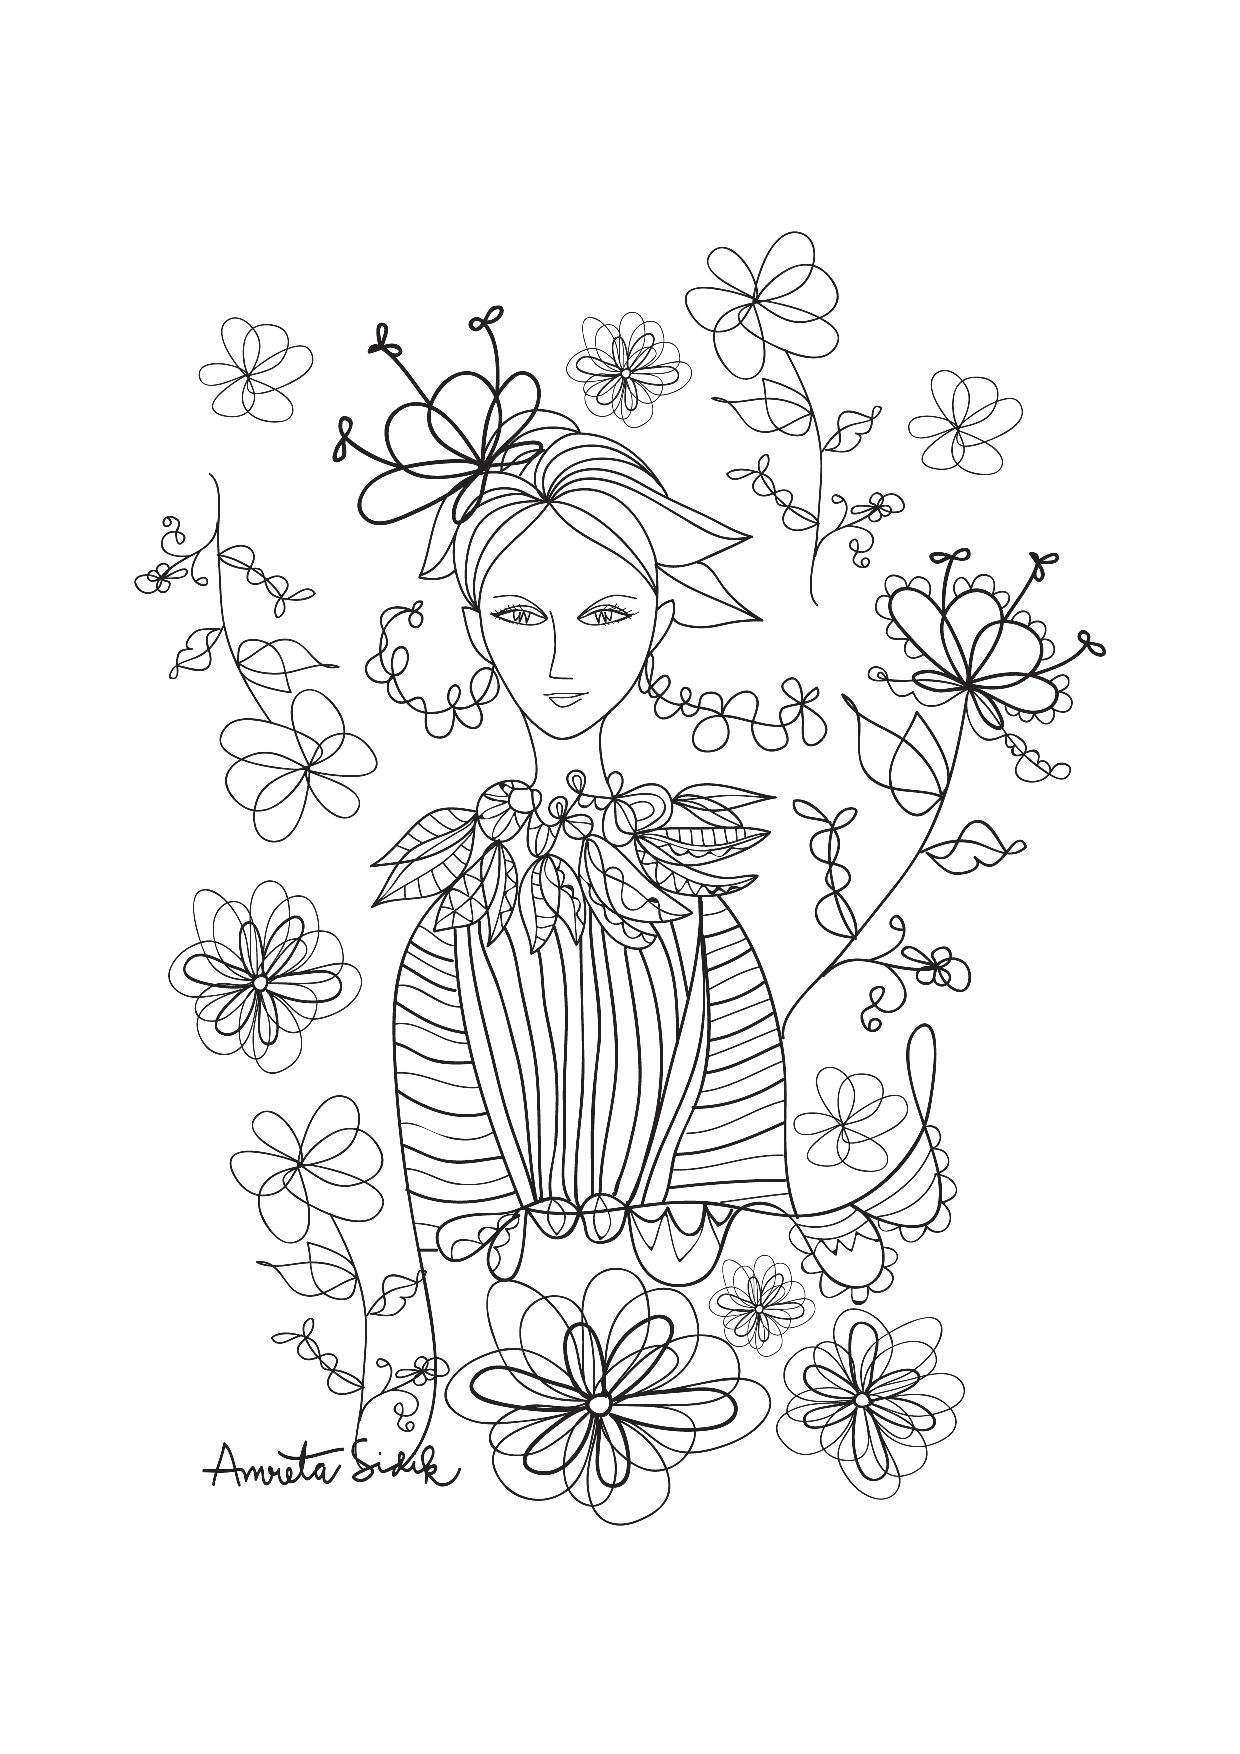 flowers girl 2 image with woman - Coloring Pages For Girl 2